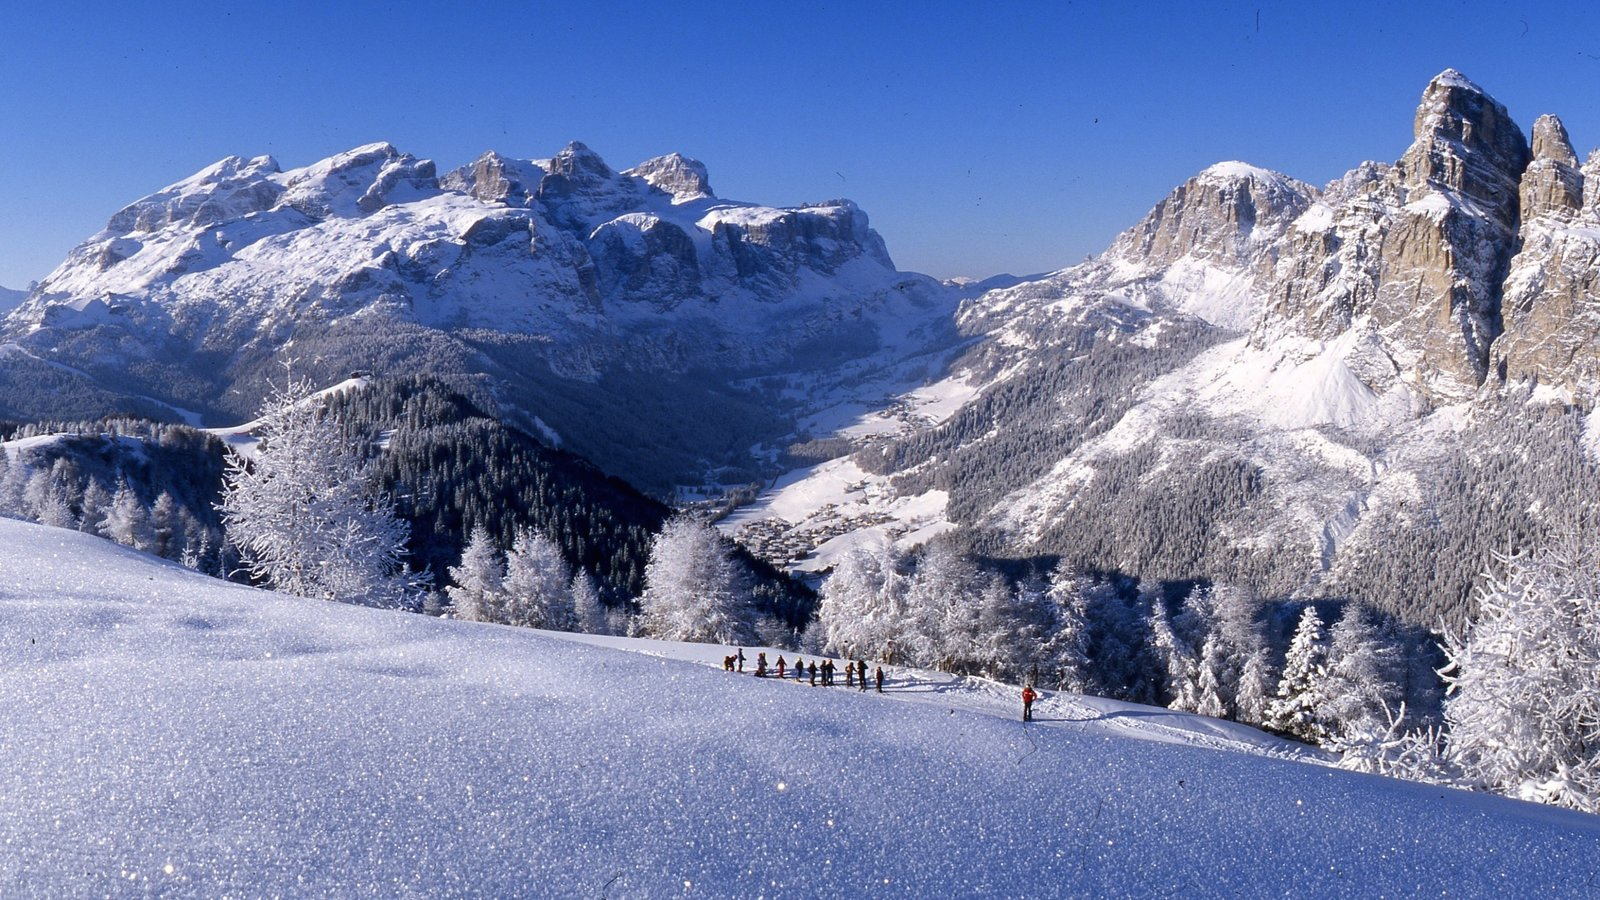 Alta Badia which includes a gorge or canyon, snow and mountains